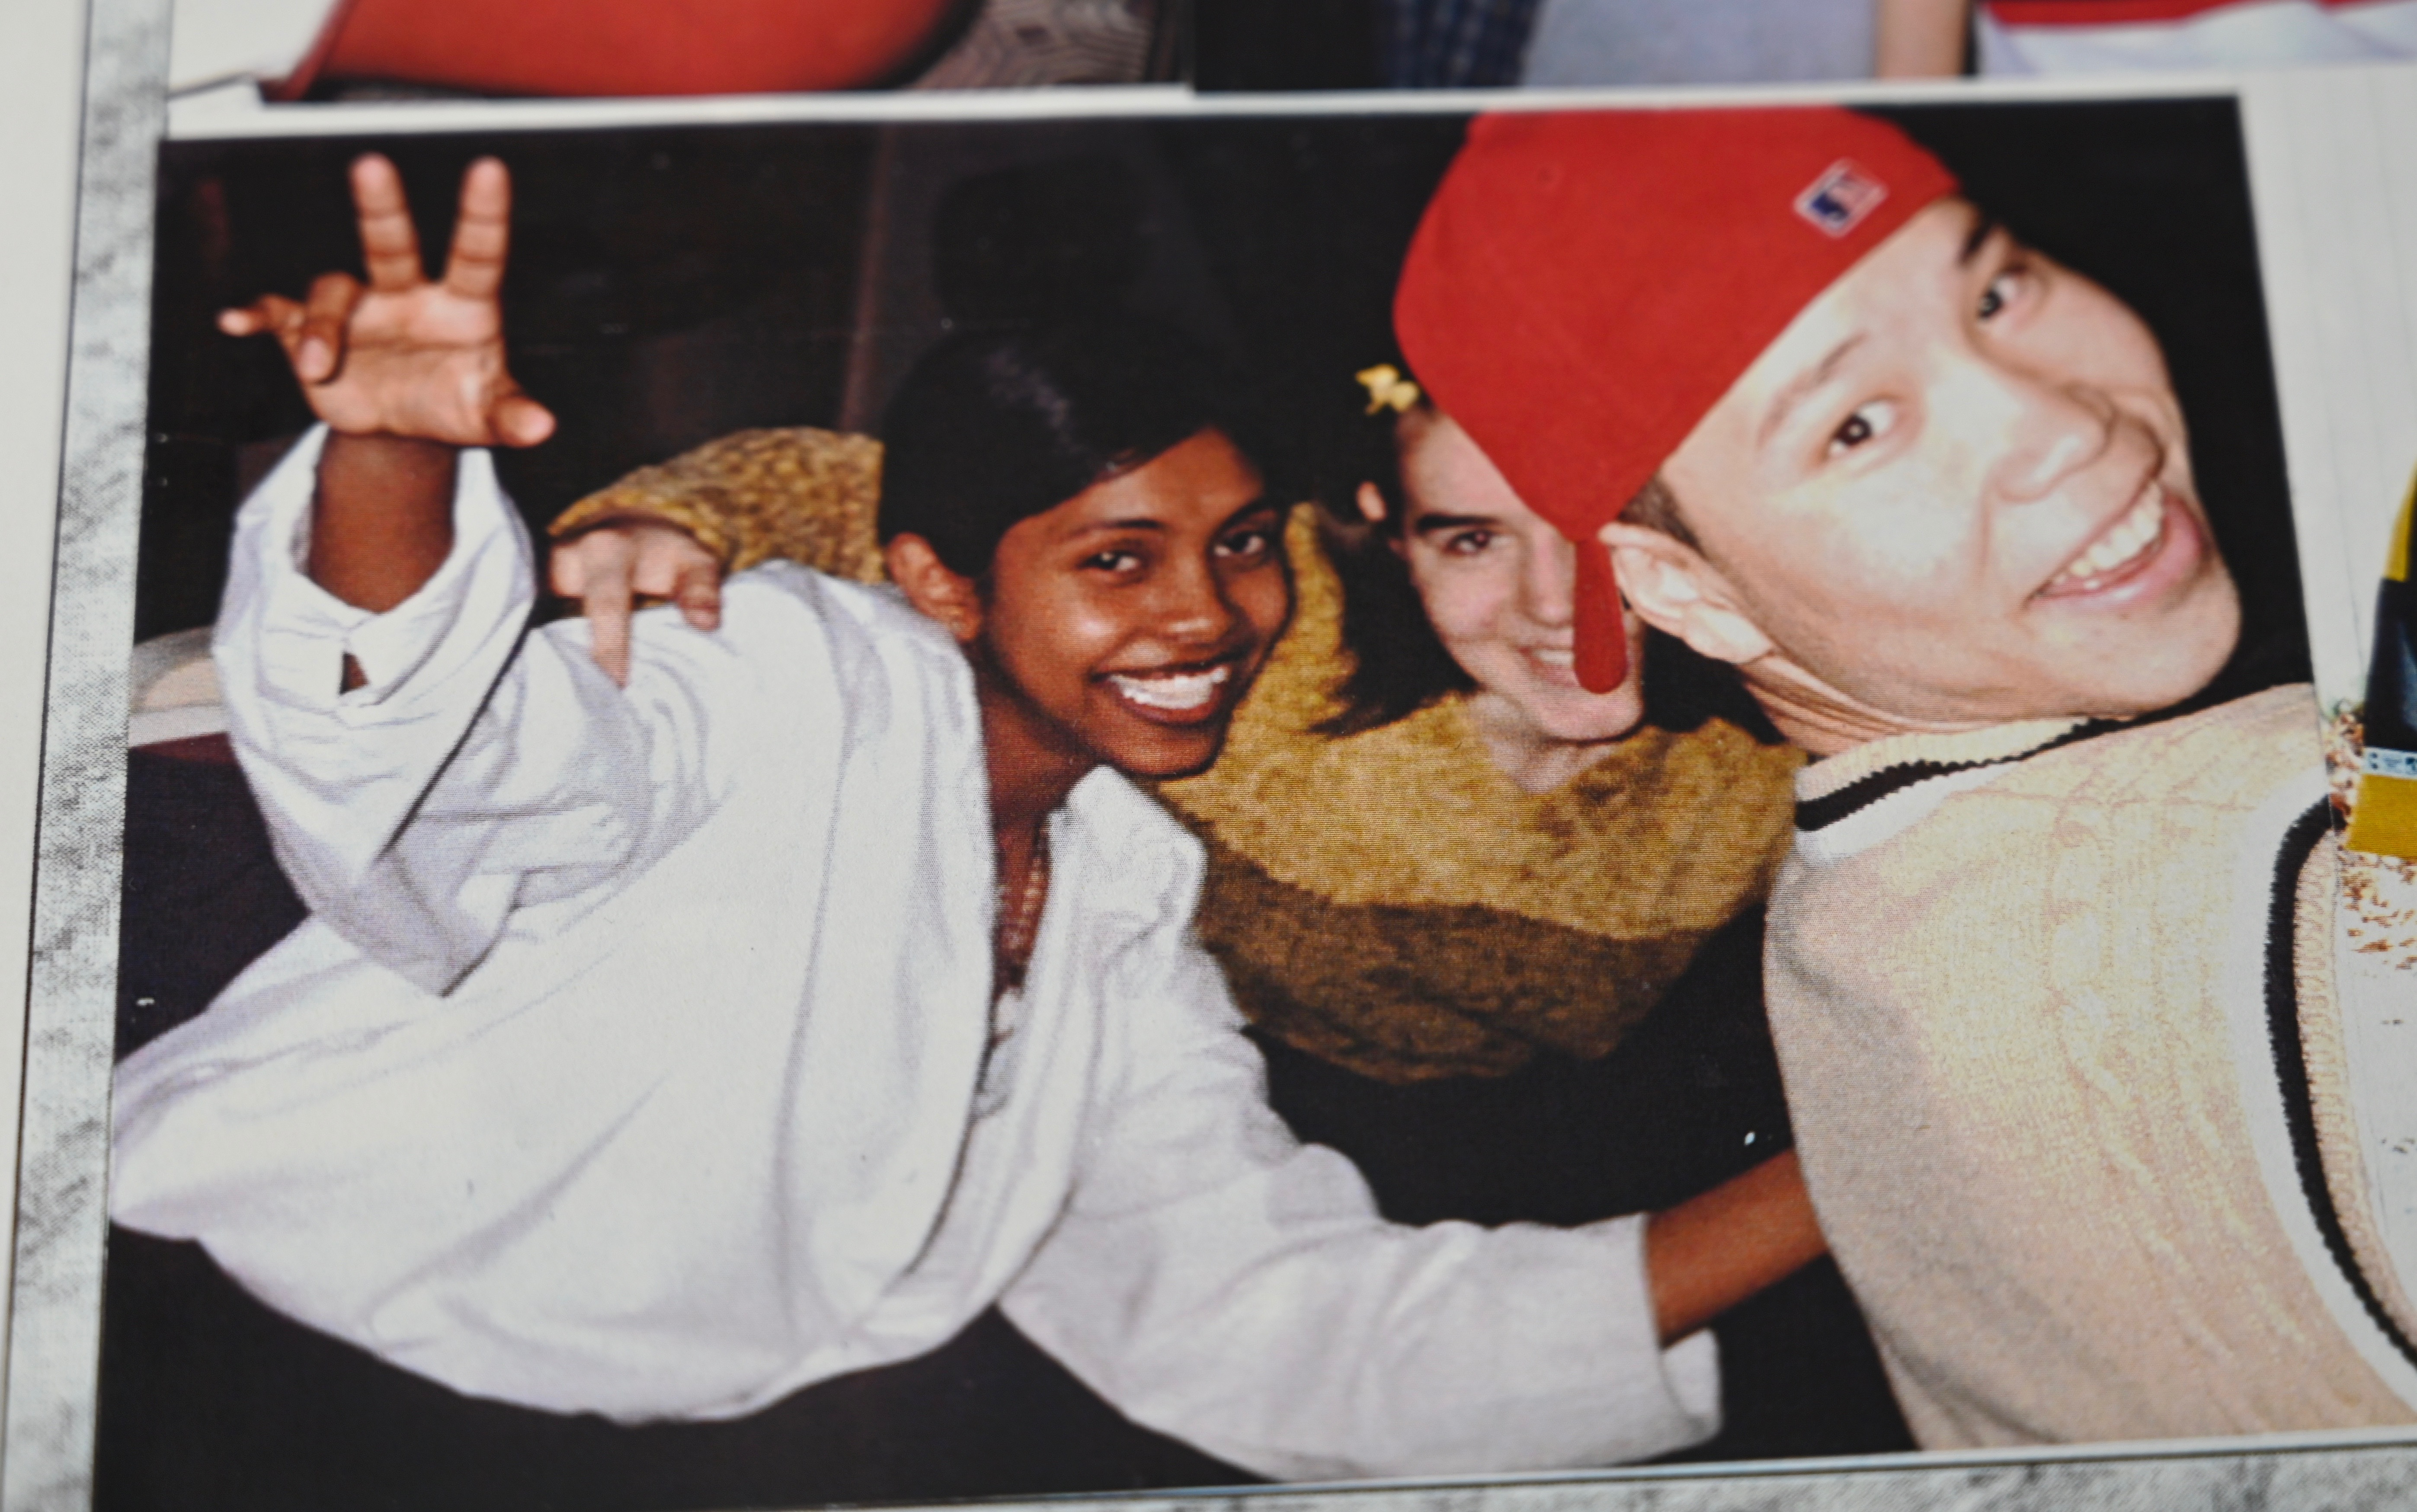 Sharmini, left, is shown with two friends in an image from her Grade 9 yearbook. (CBC)